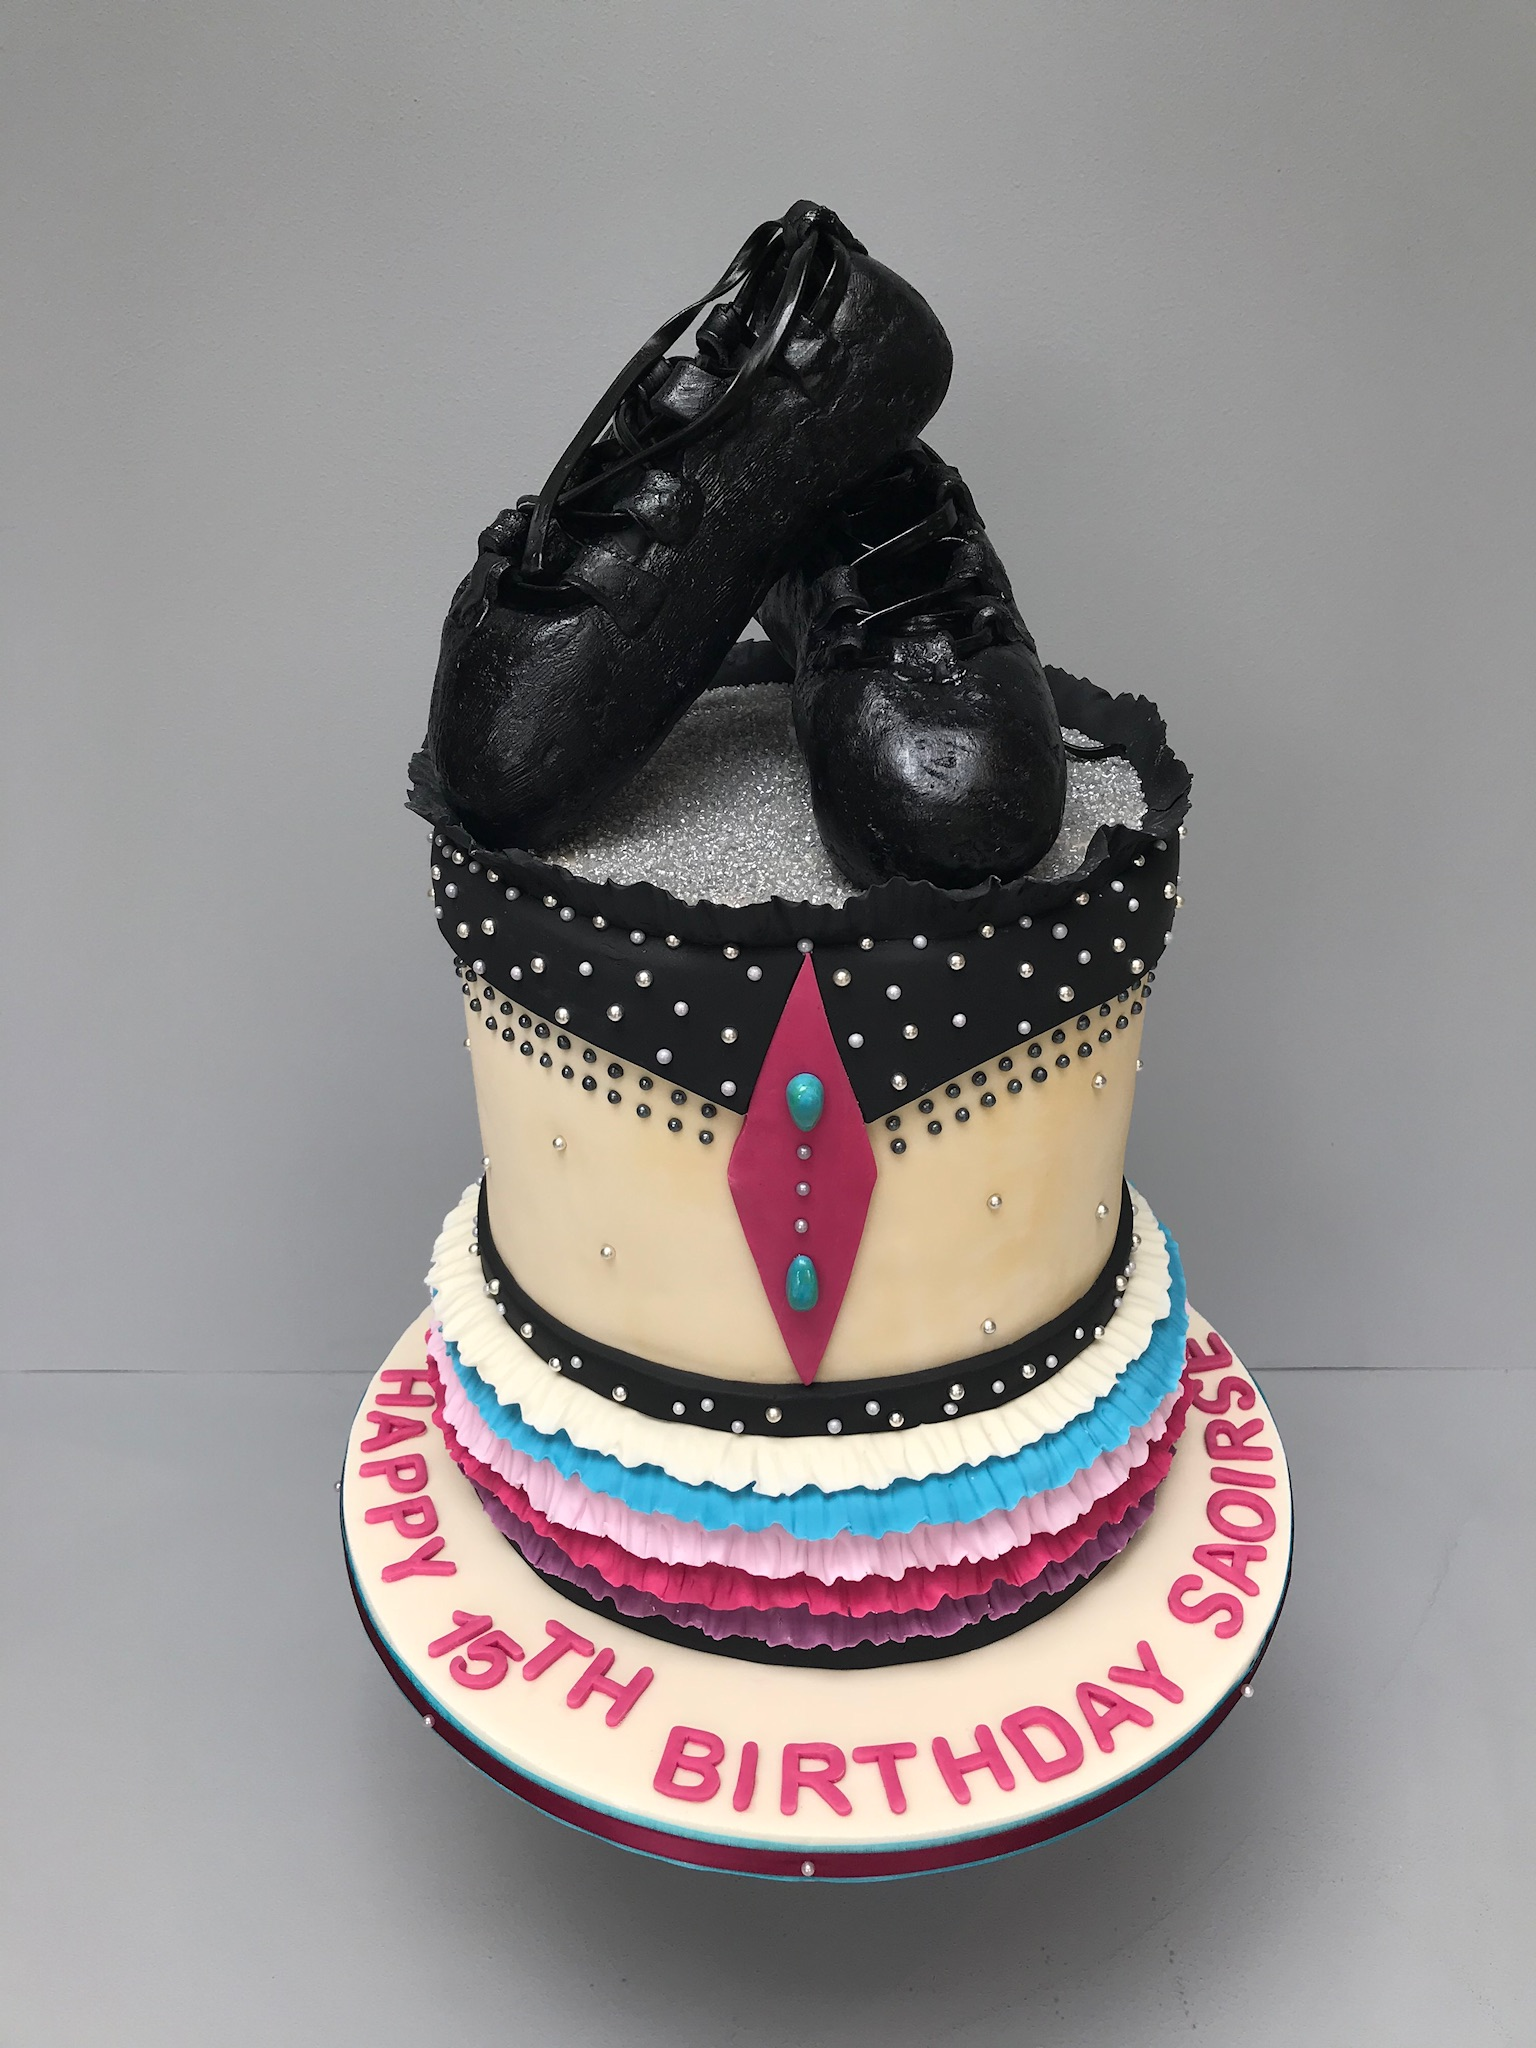 Irish Dancing Cake